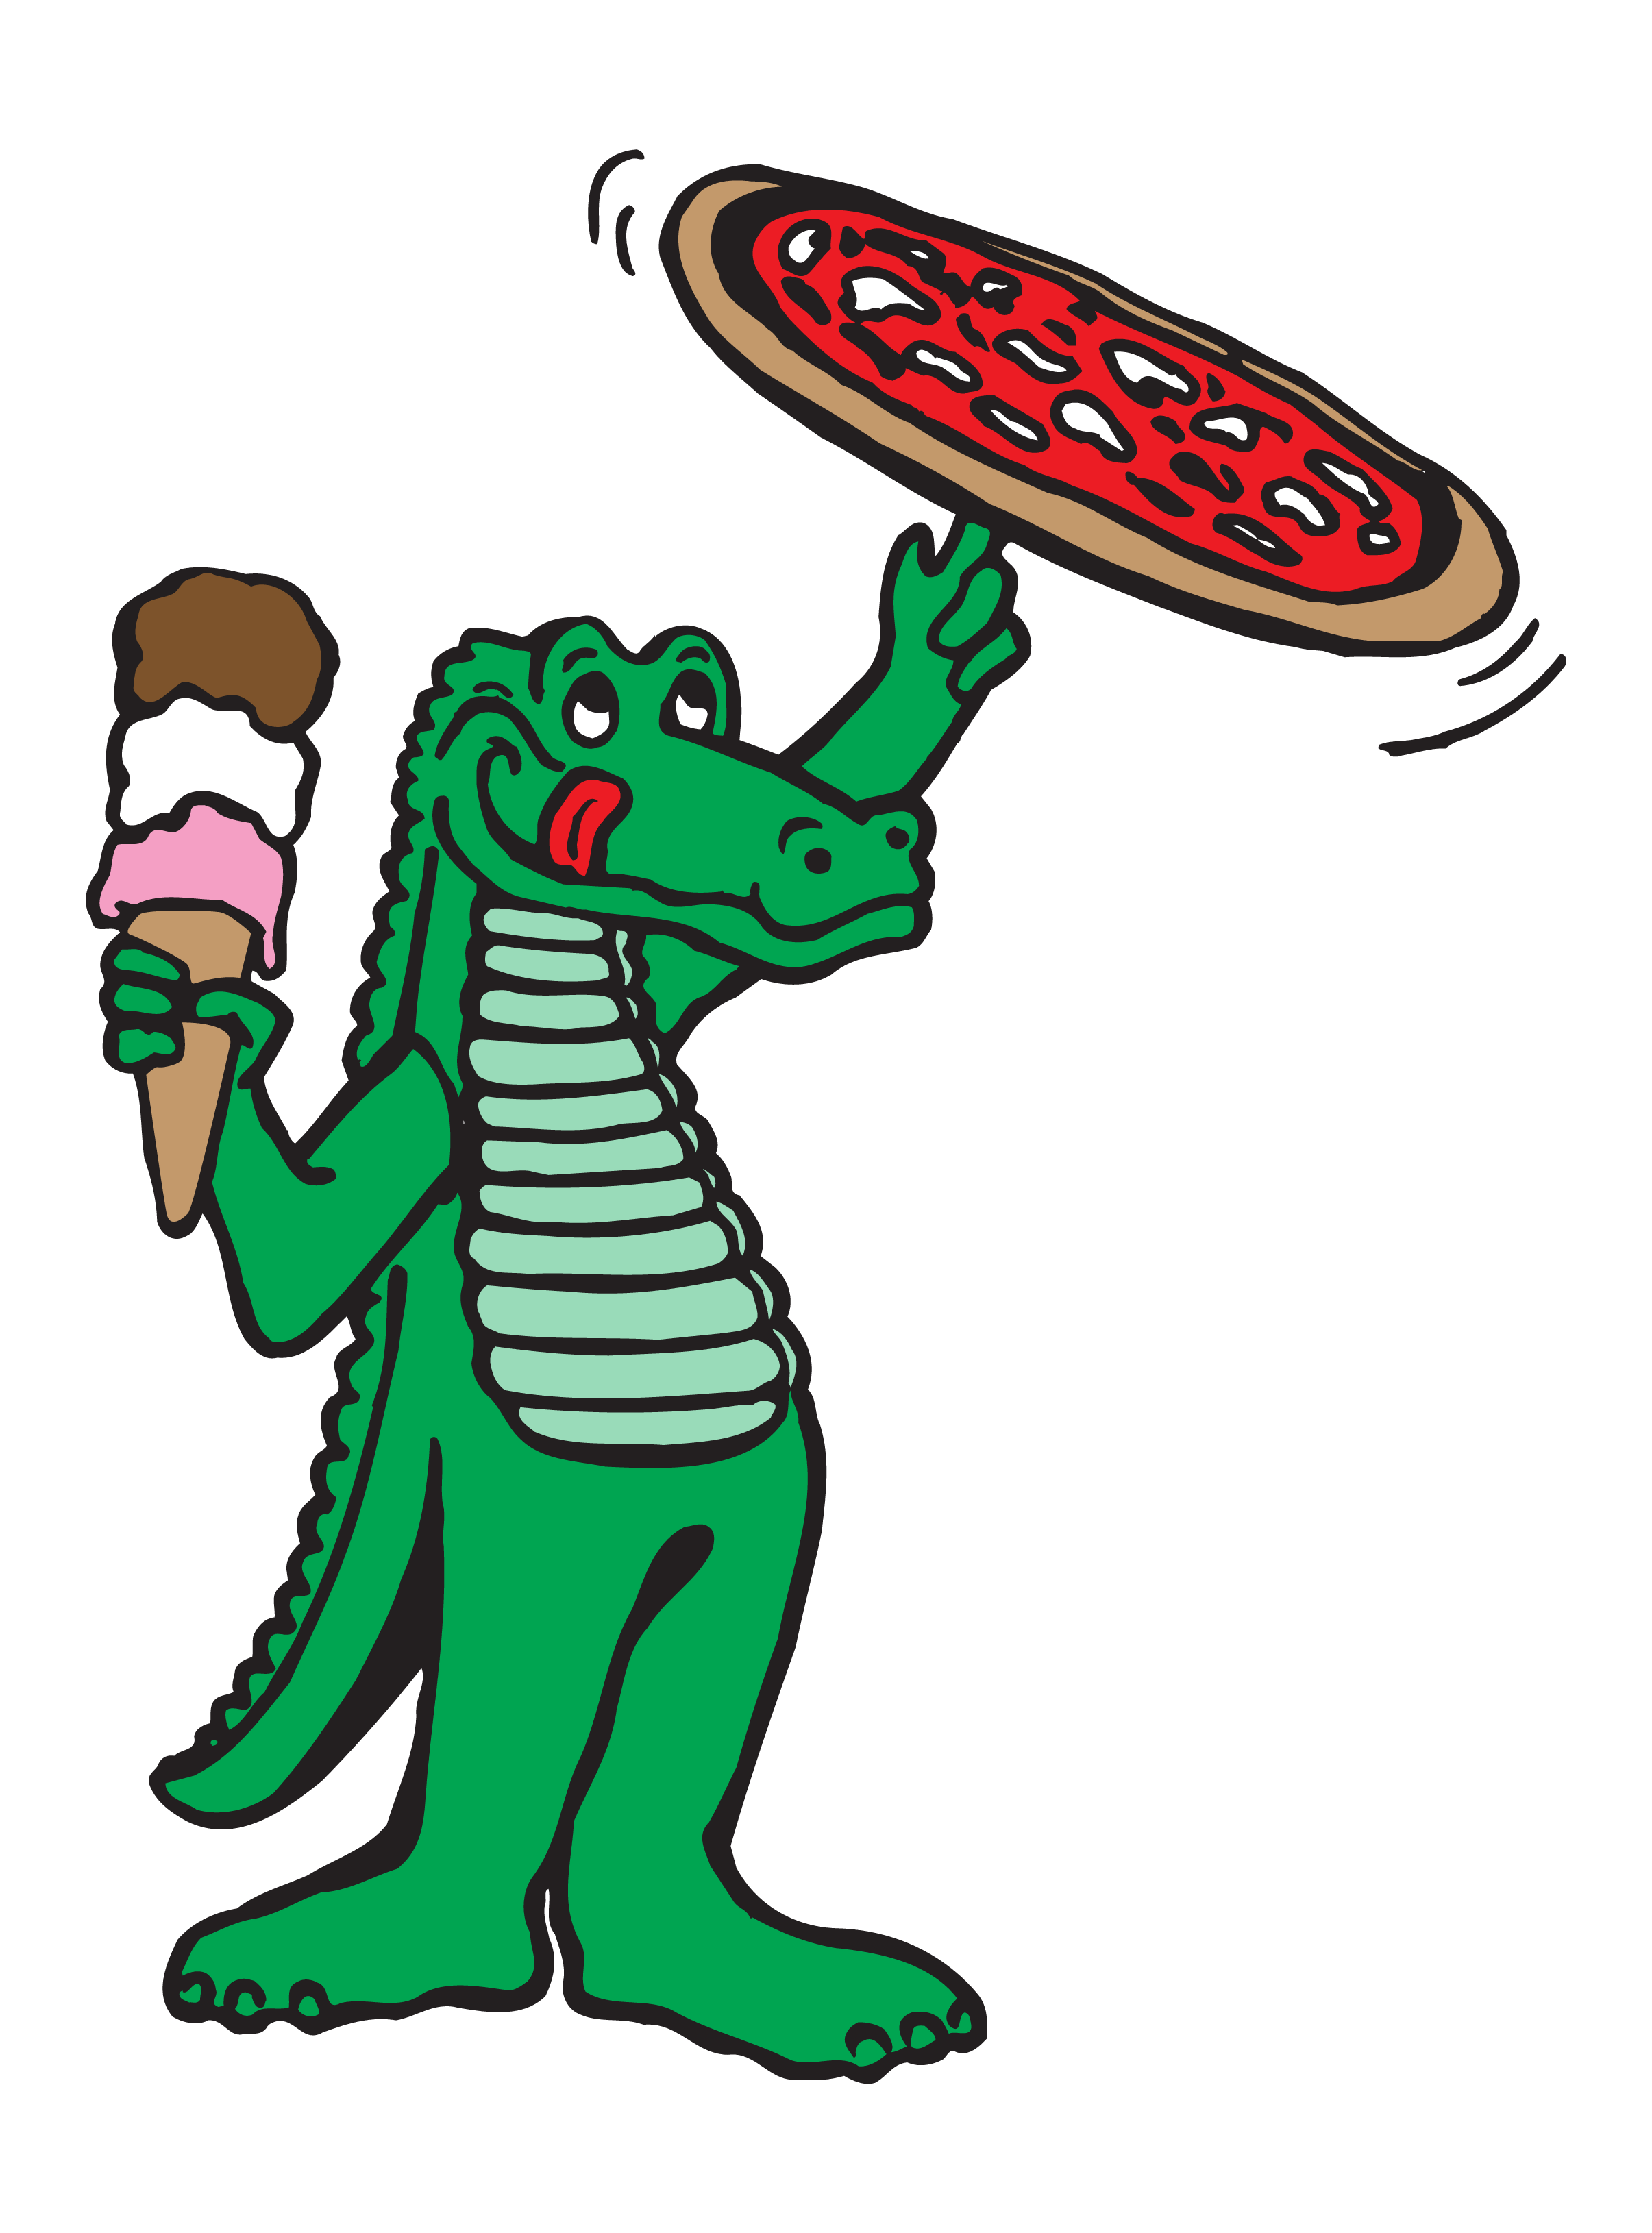 Prep's Pizza Gator with pizza and ice cream